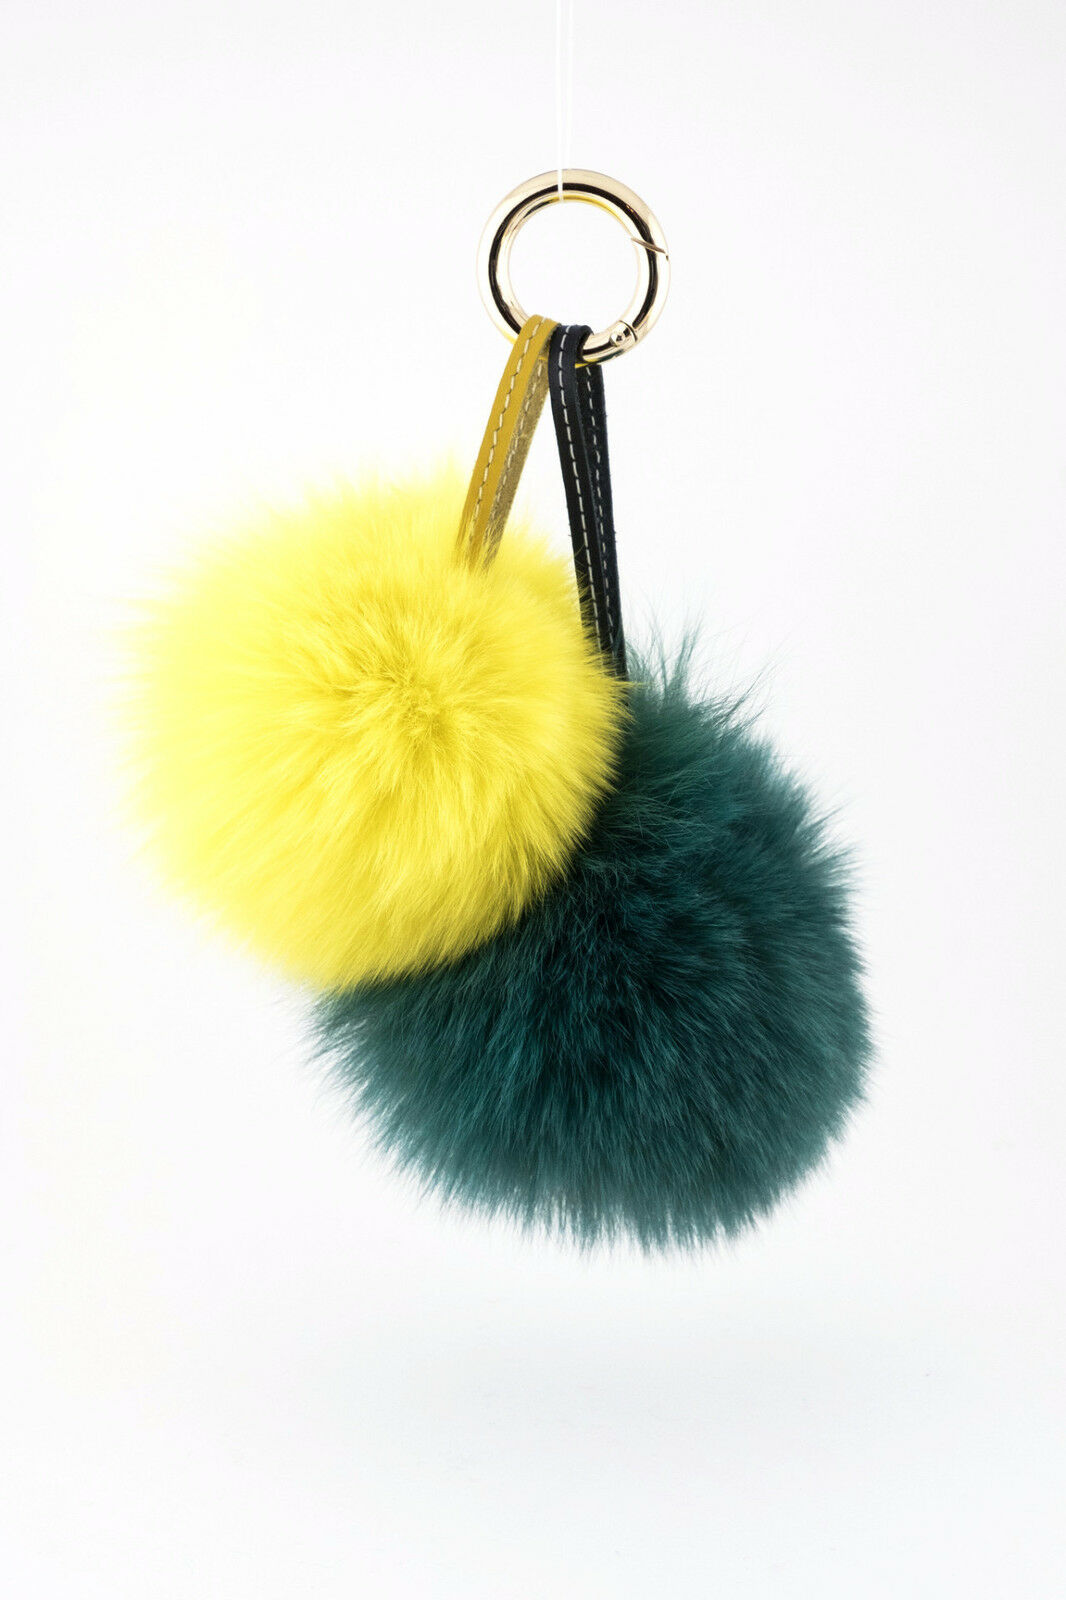 Green & Yellow Rabbit Fur Pom-Pom Key Chain